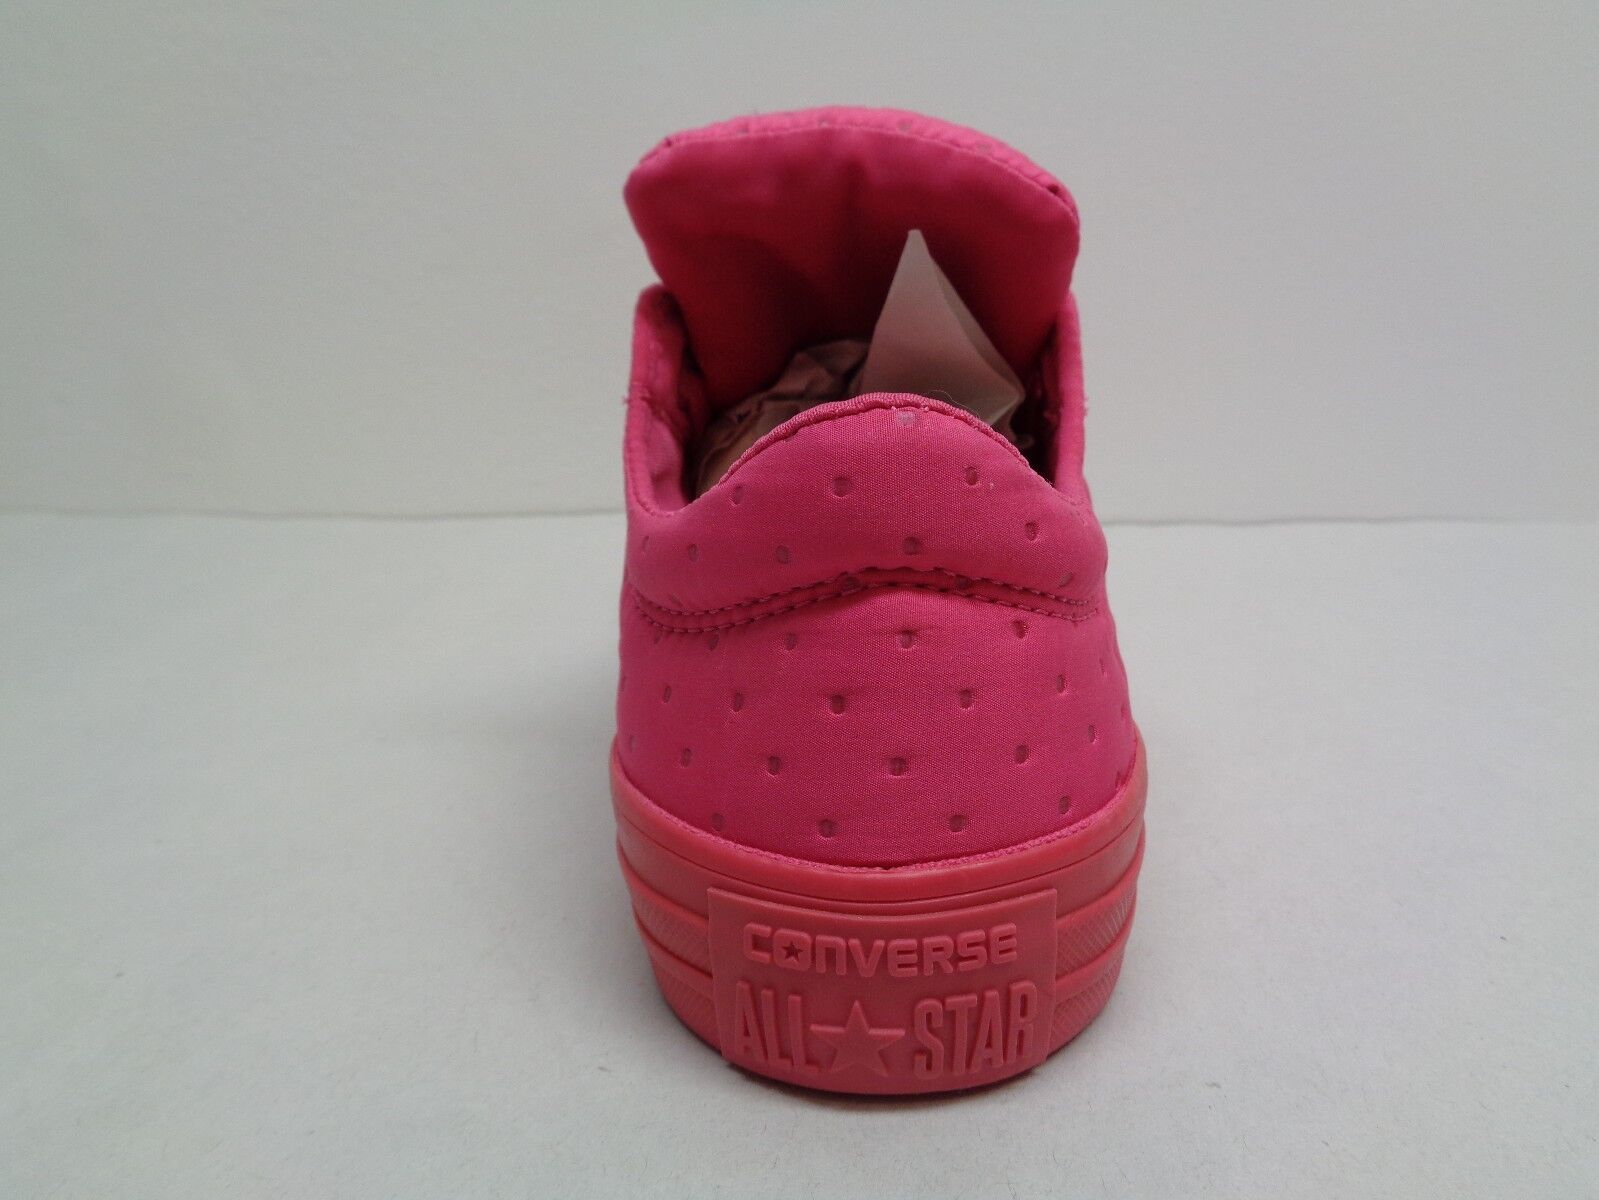 Converse All Star Größe 6 MADISON Vivid Pink Fashion Fashion Fashion Sneakers New Damenschuhe Schuhes 19bc4e